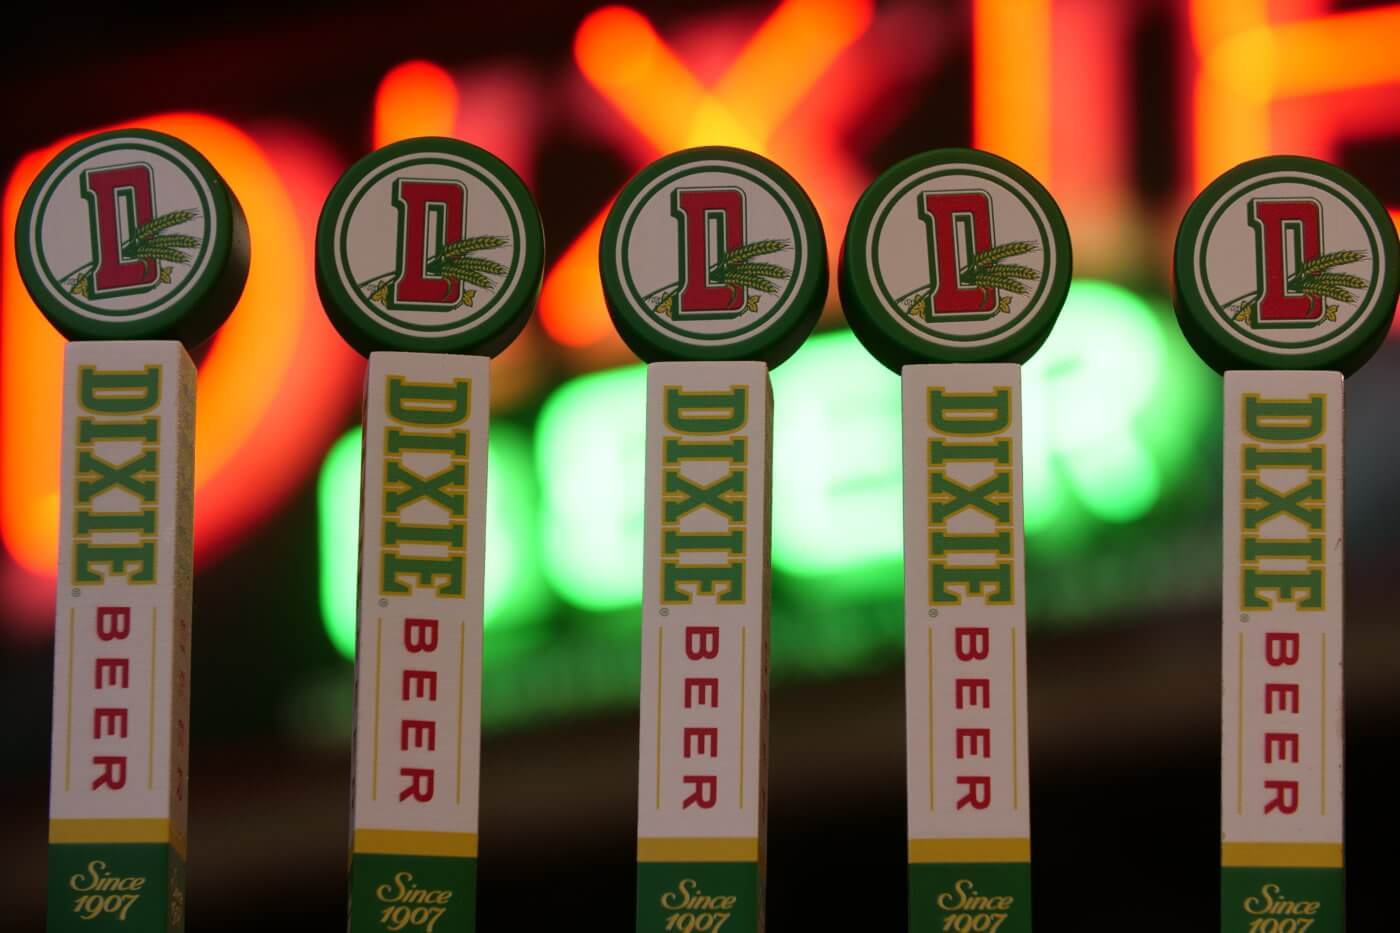 A row of tap handles inside the tasting room at Dixie Brewing Company in New Orleans, Louisiana